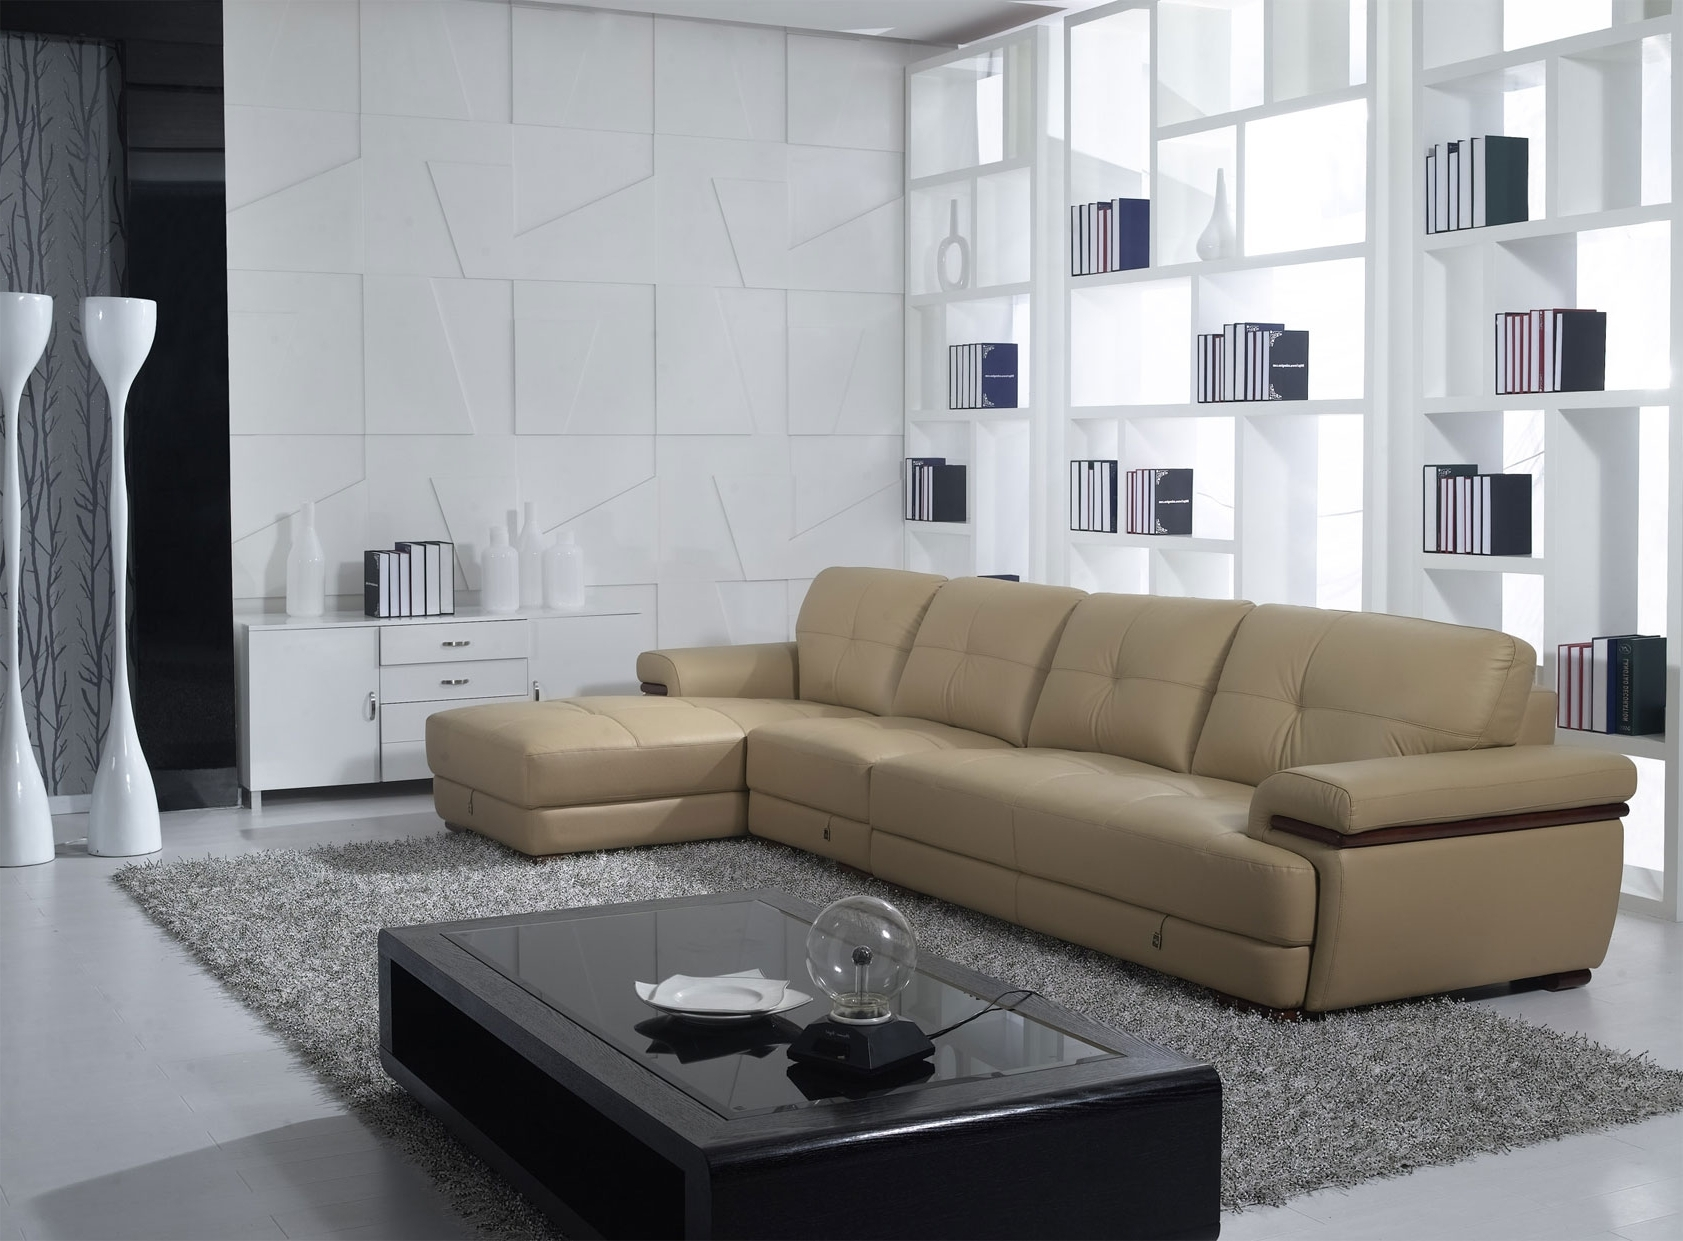 Most Recently Released Quality Sectional Sofas Intended For Fancy Quality Sectional Sofas 15 Sofas And Couches Ideas With (Gallery 2 of 20)